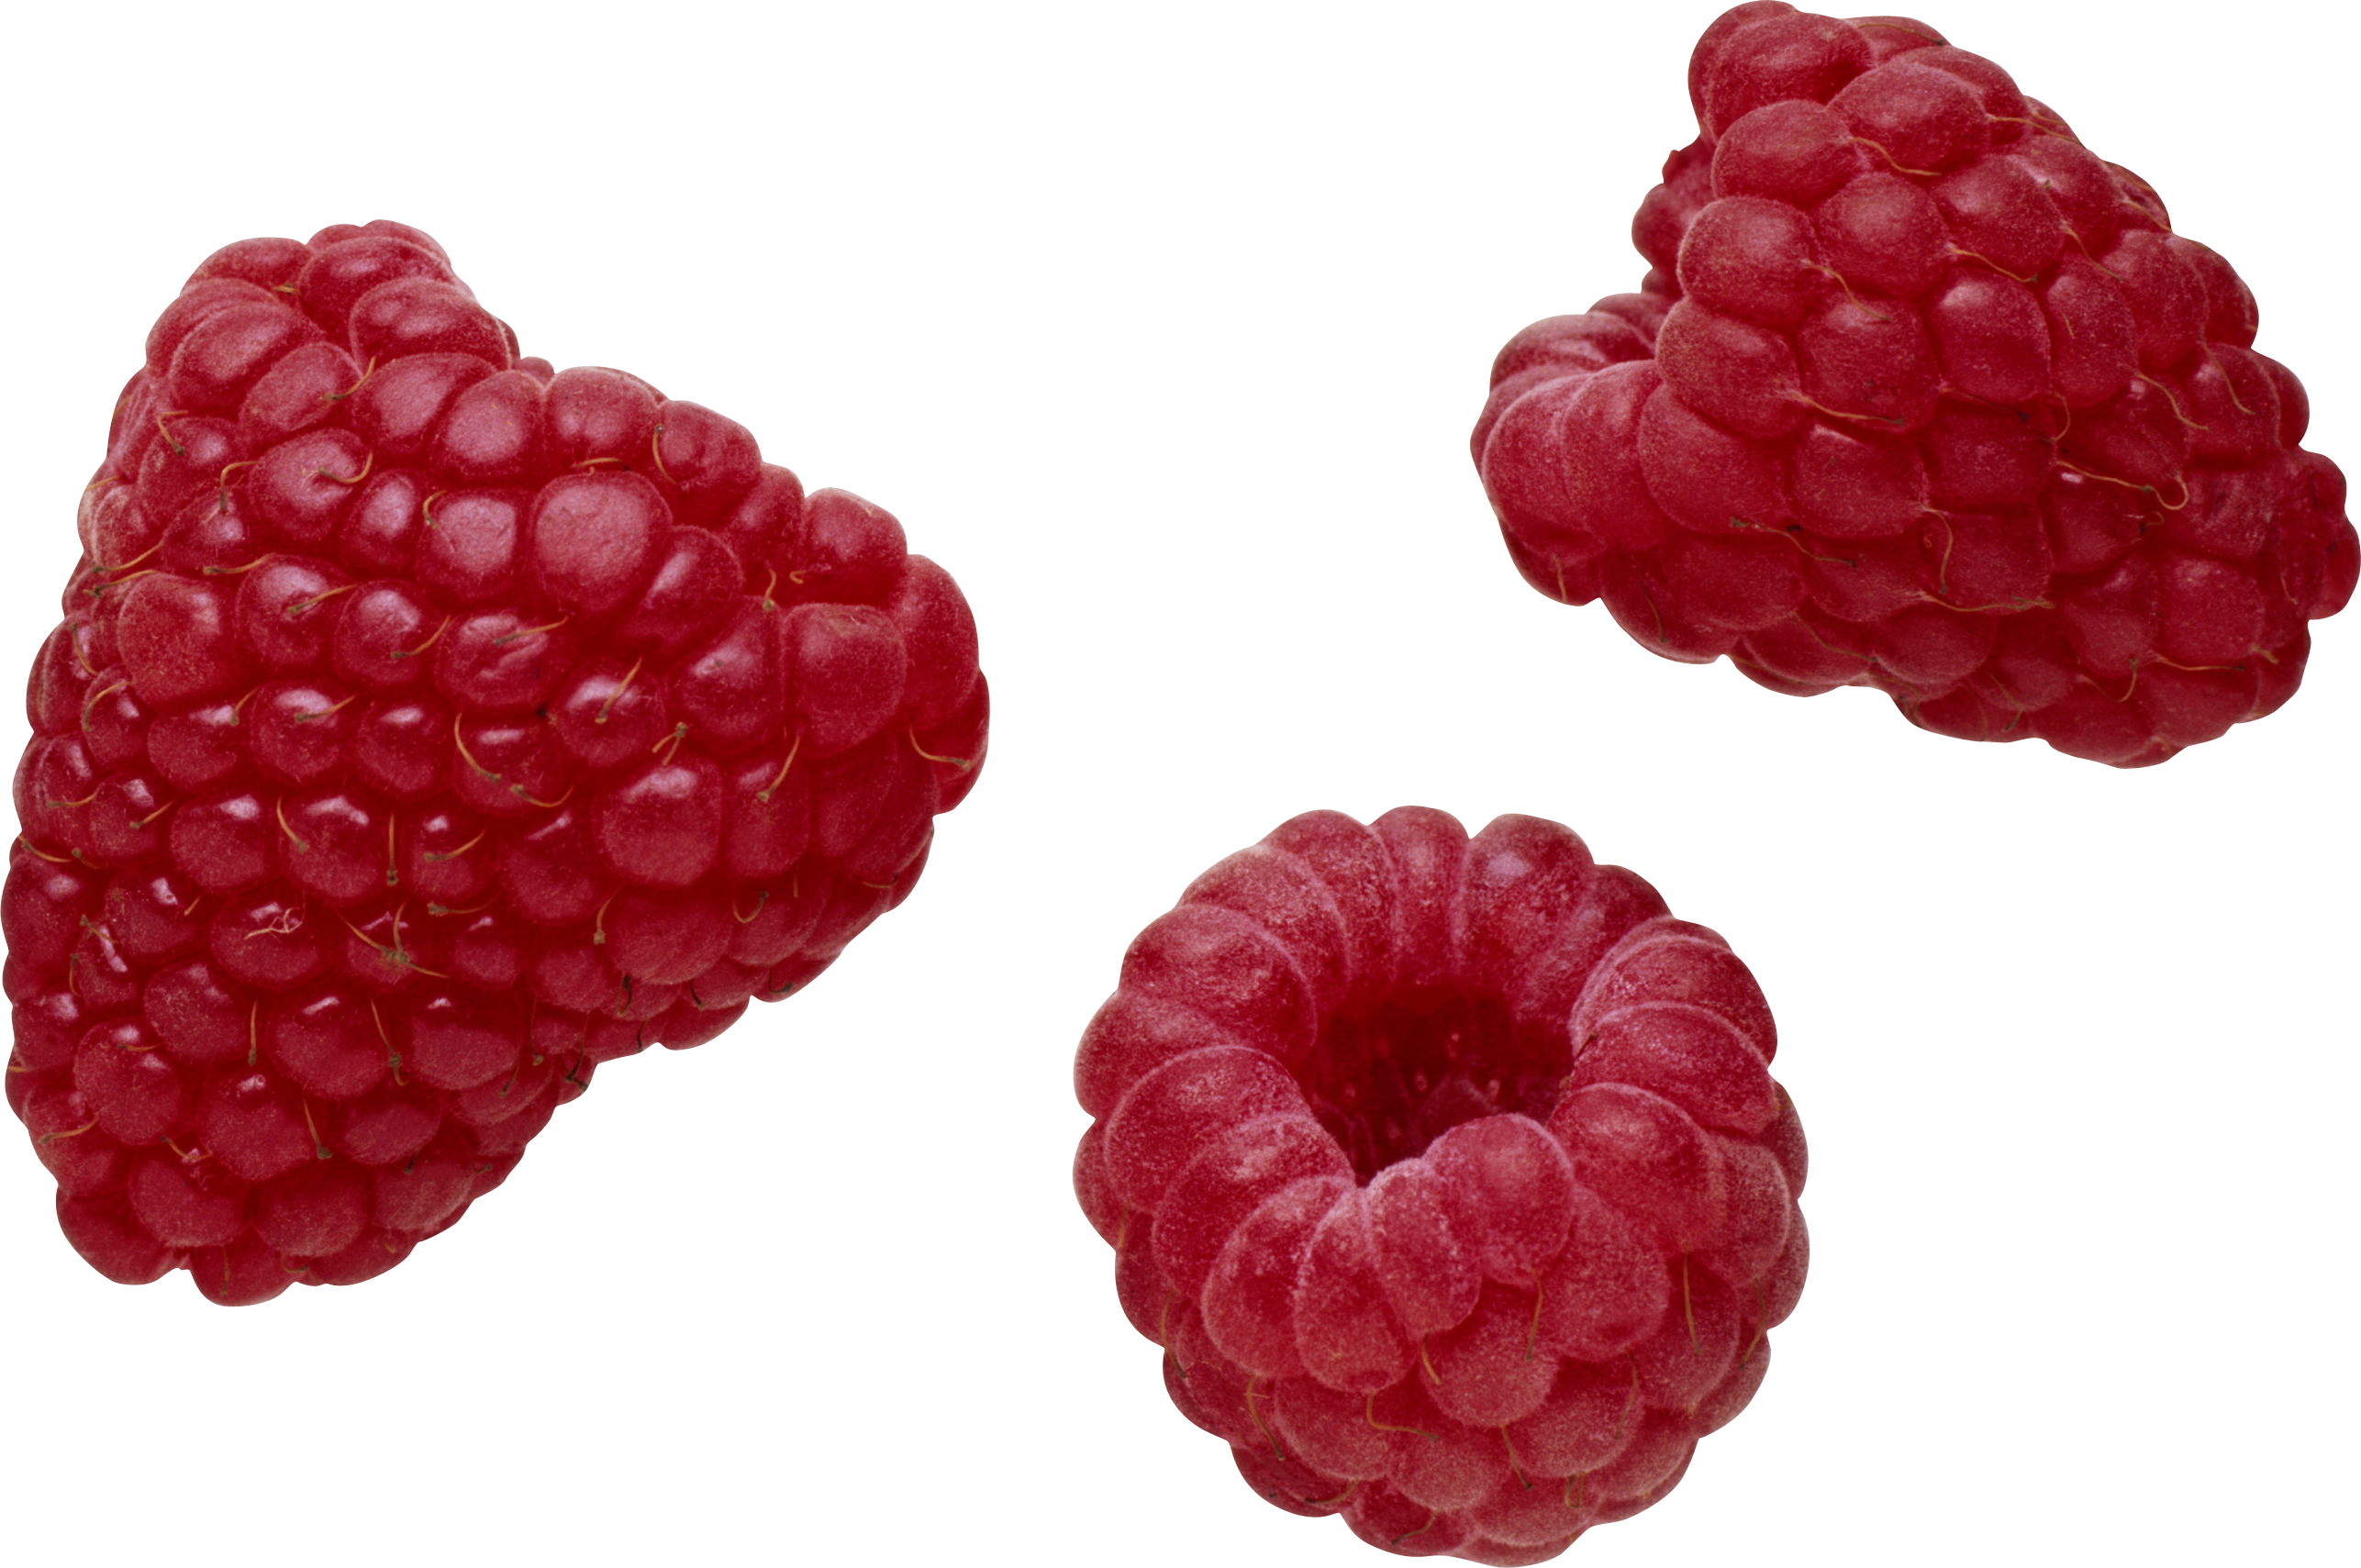 Raspberry PNG images free pictures download.